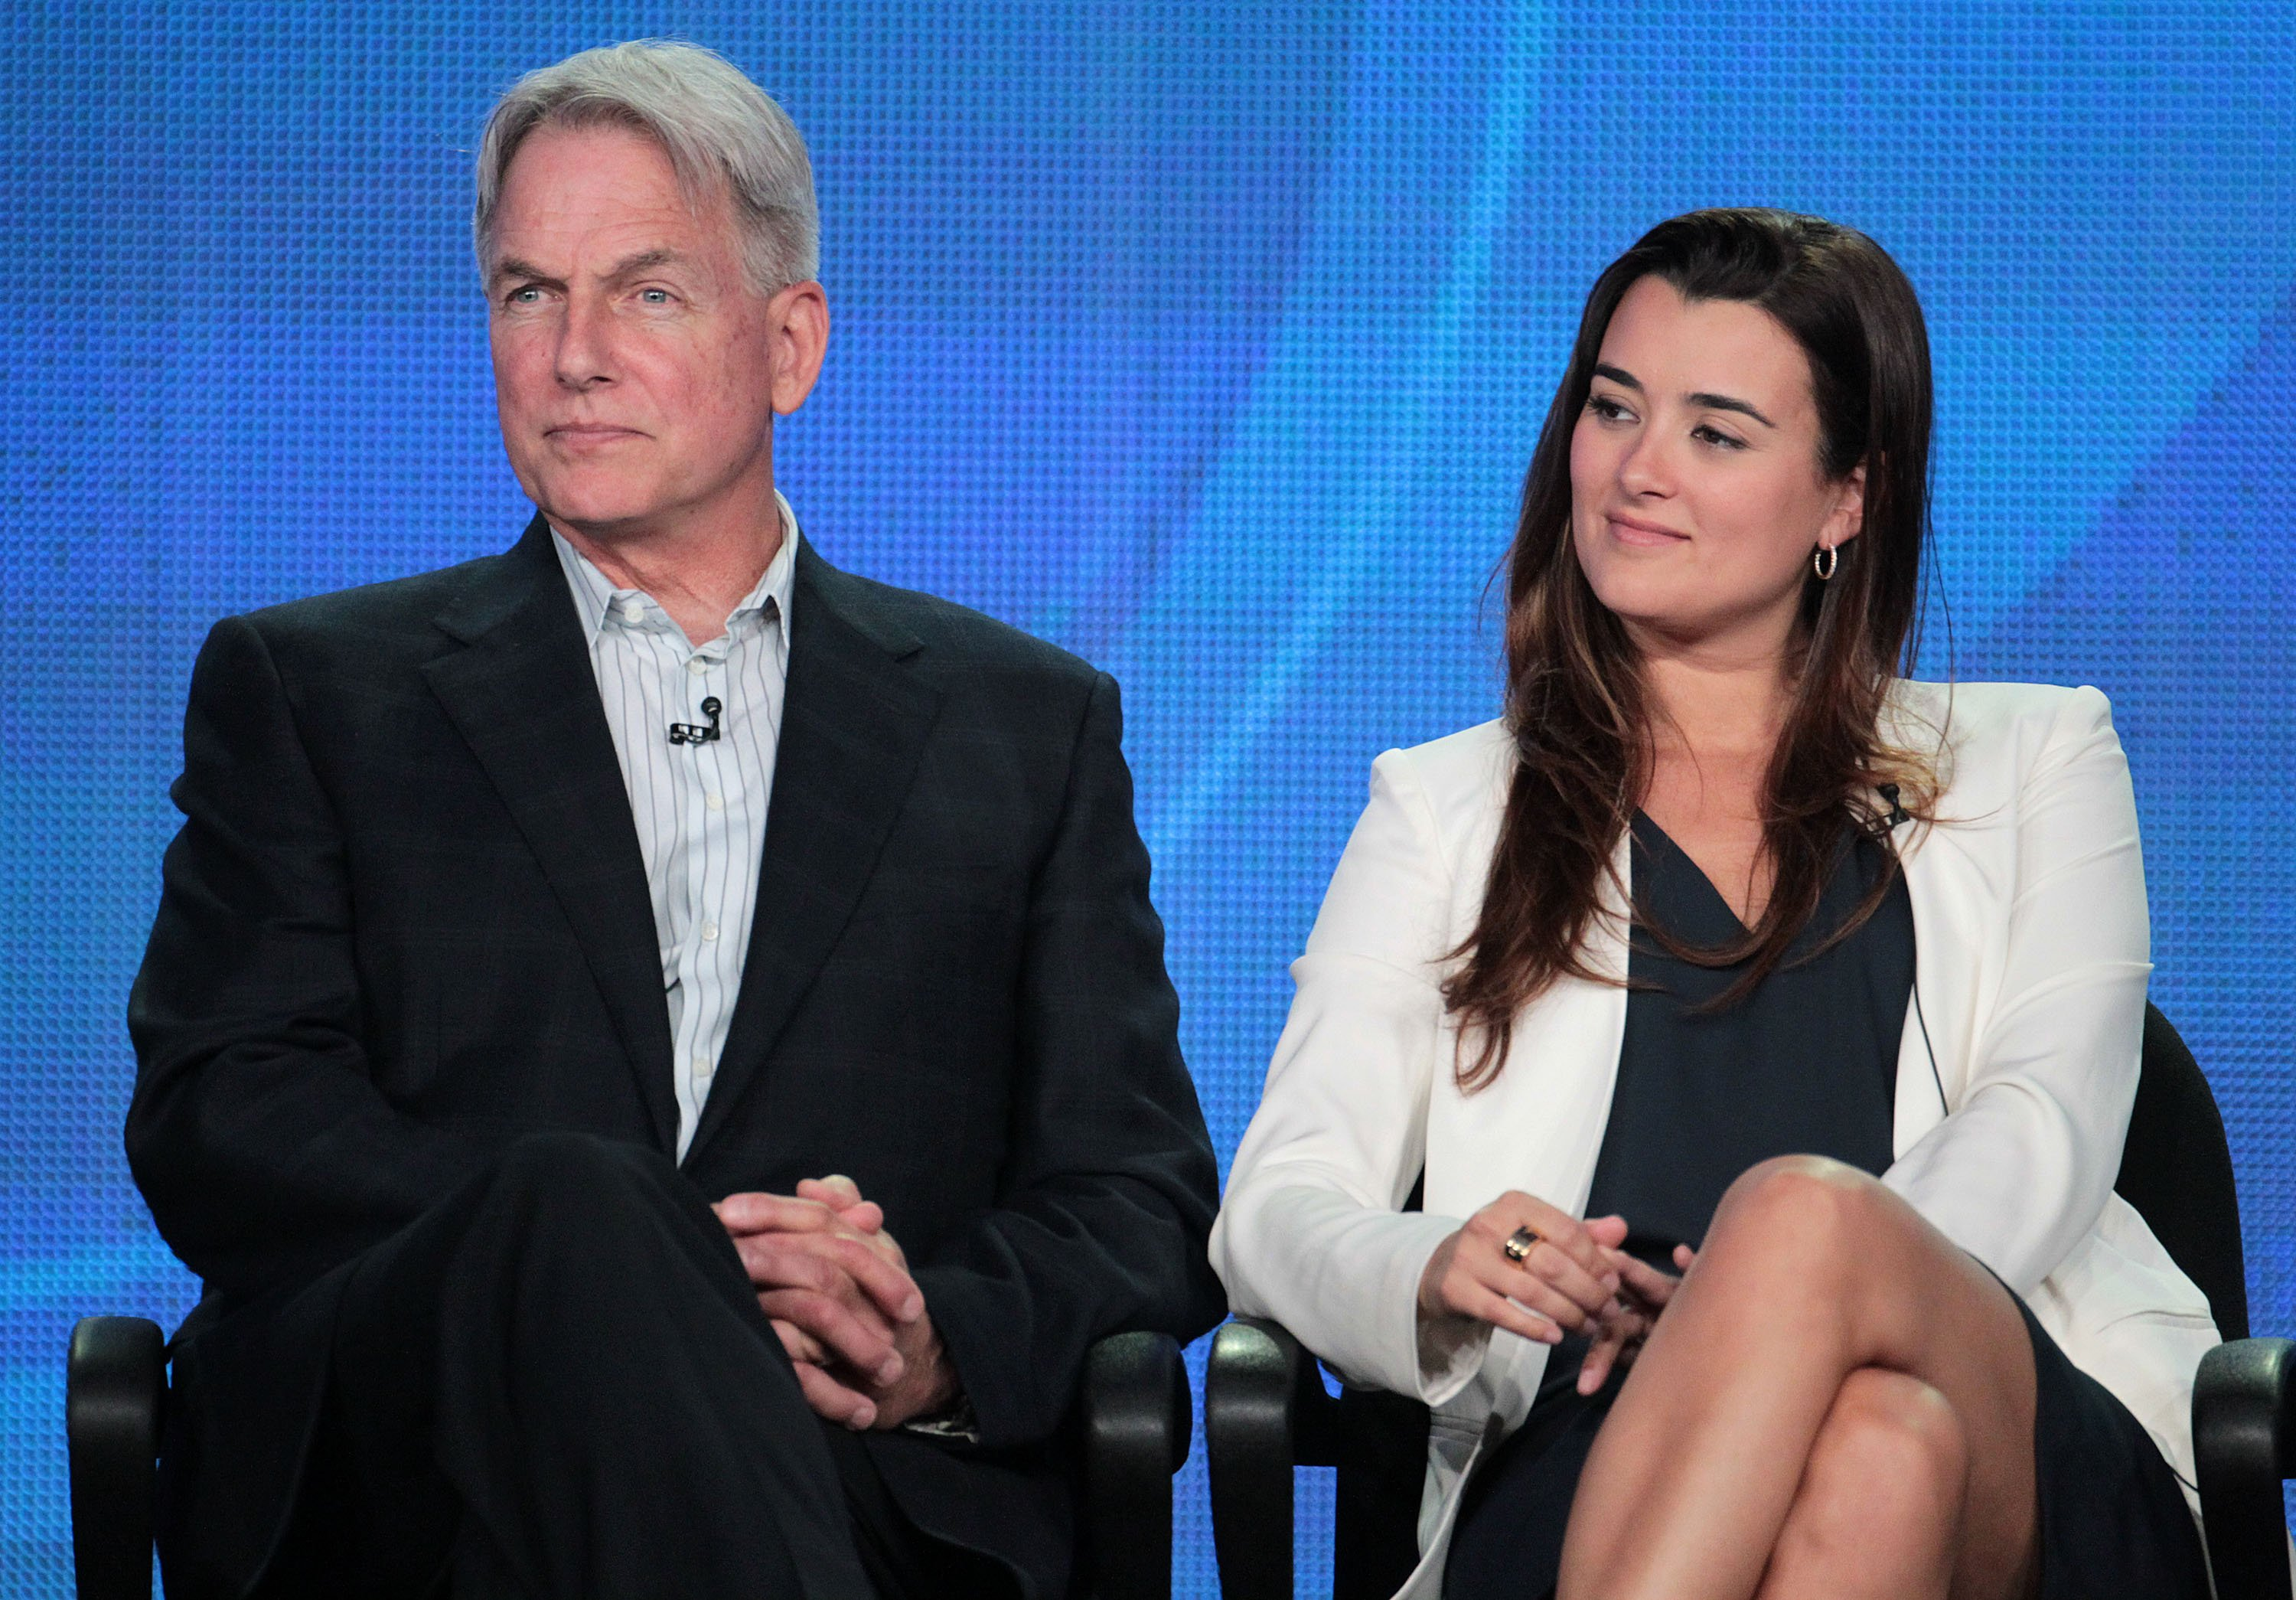 Mark Harmon and Cote de Pablo speak during the Television Critics Association Press Tour on January 11, 2012, in Pasadena, California. | Source: Getty Images.